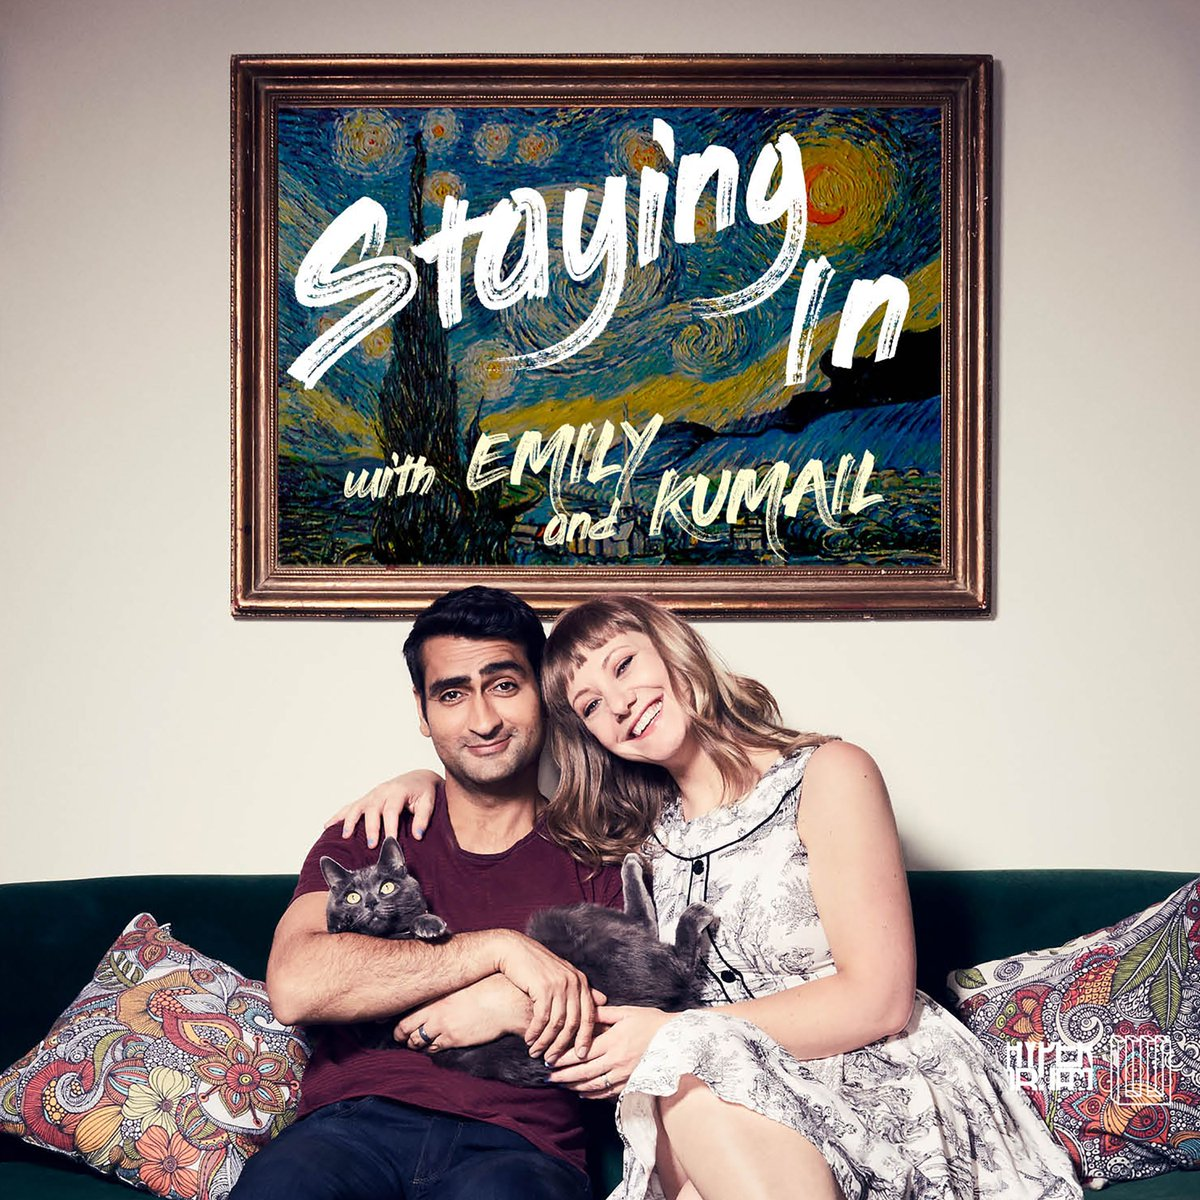 • Staying In With Emily and Kumail   Celebrity couple Emily V. Gordon and Kumail Nanjiani offer excellent advice on how to survive quarantine. The two have an easy comic energy and seem to genuinely like one another as human beings (surprisingly rare on couple-hosted podcasts)